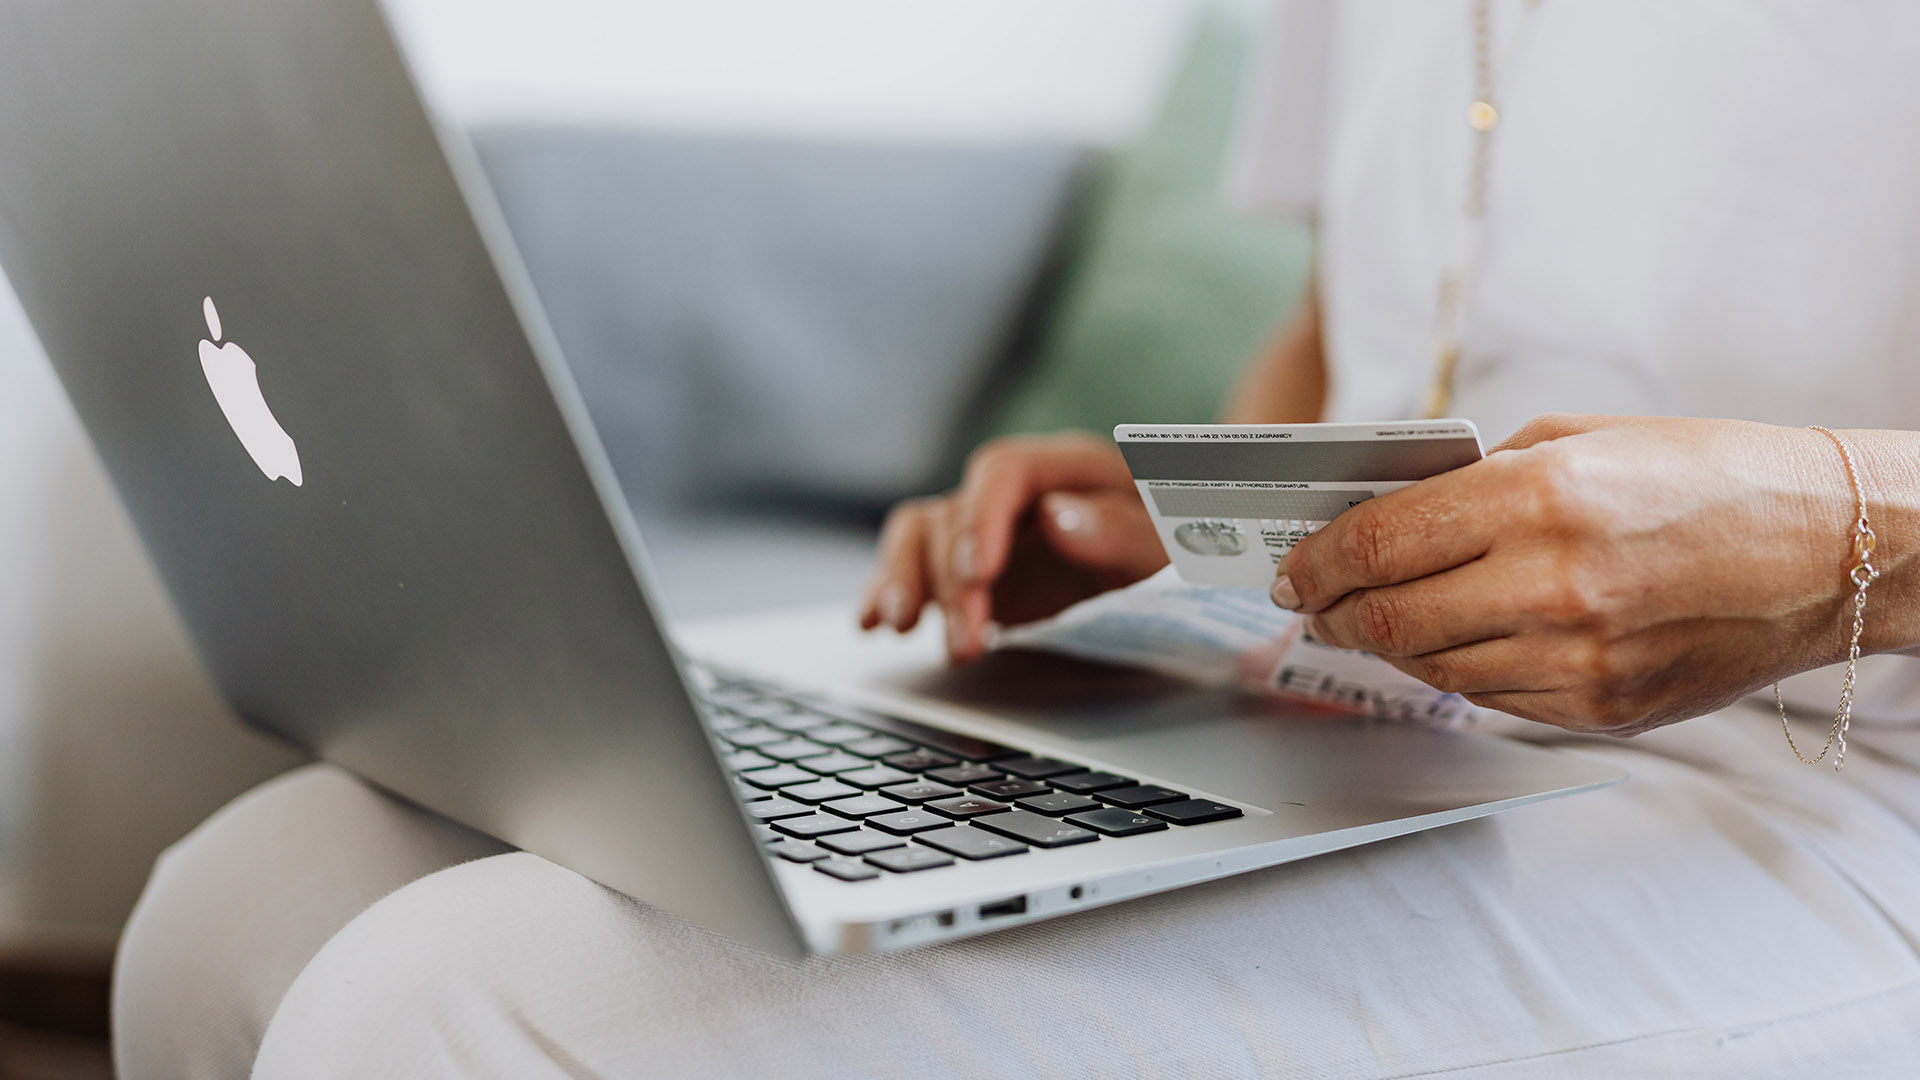 SEA e-commerce business confidence index hovers at 64/100